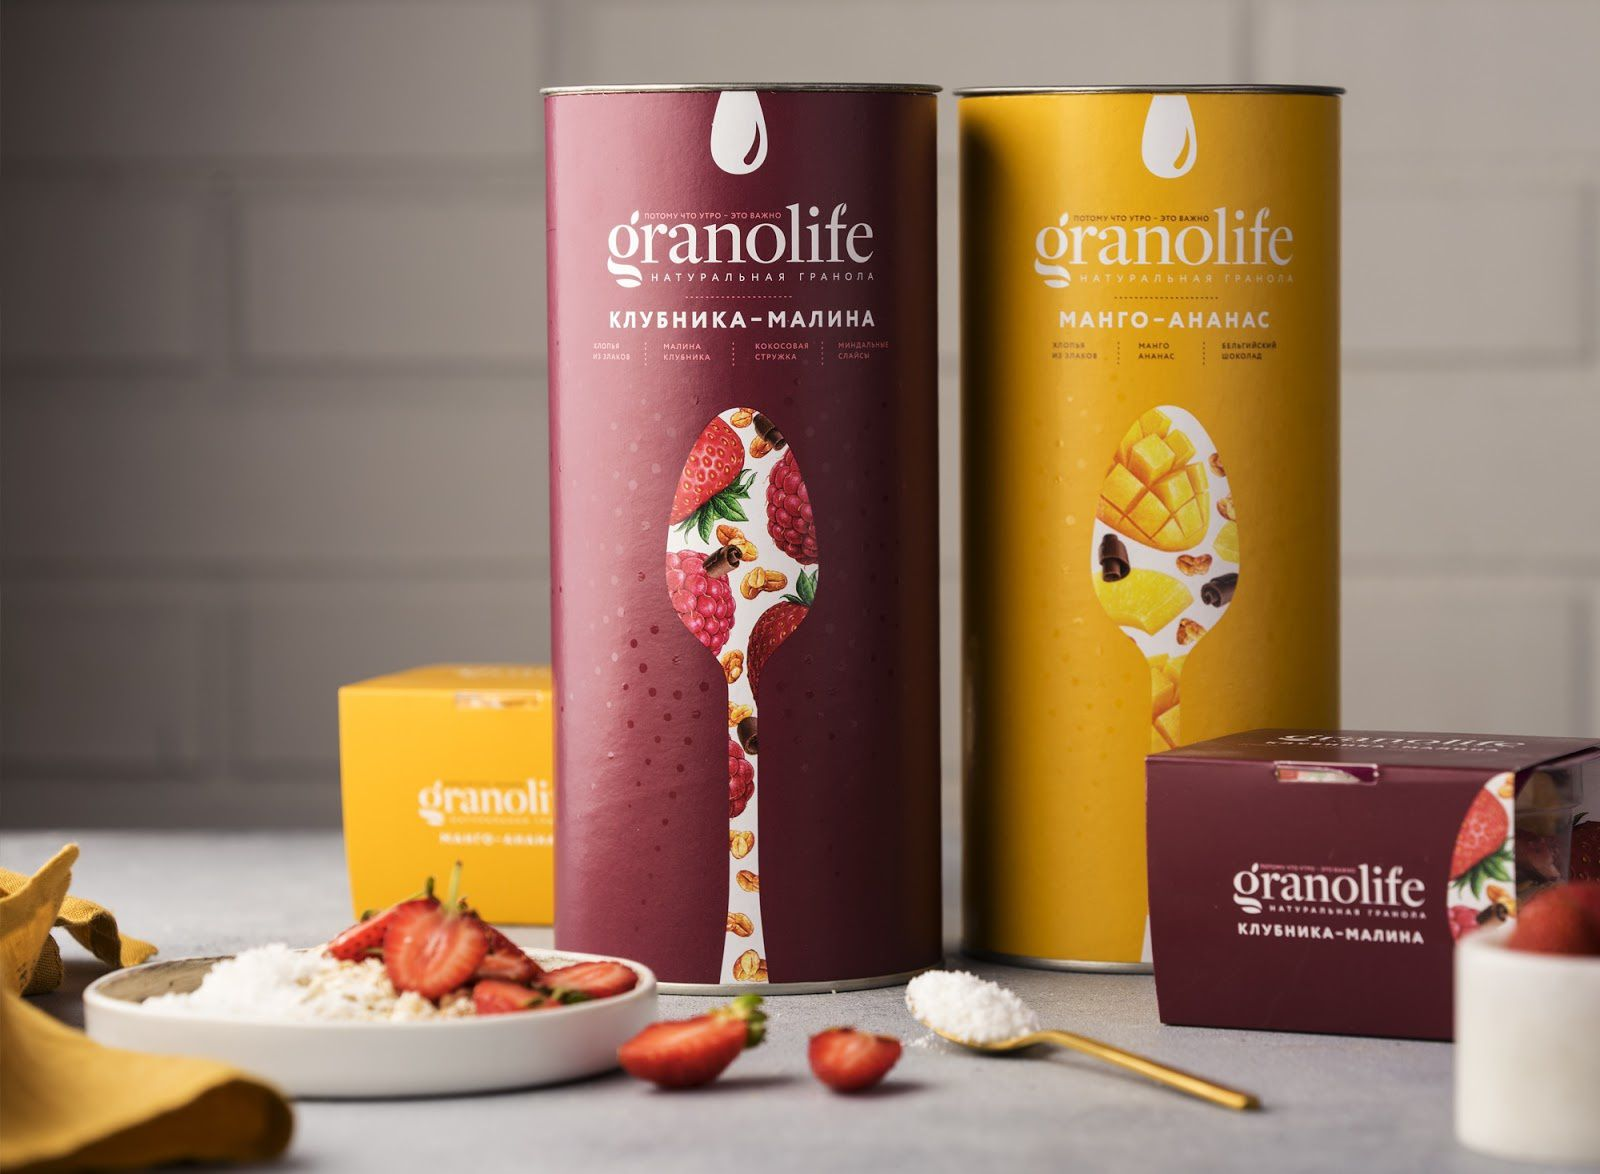 Granolife (granola) I Design : Ohmybrand Agency, Moscou, Russie (juillet 2018)